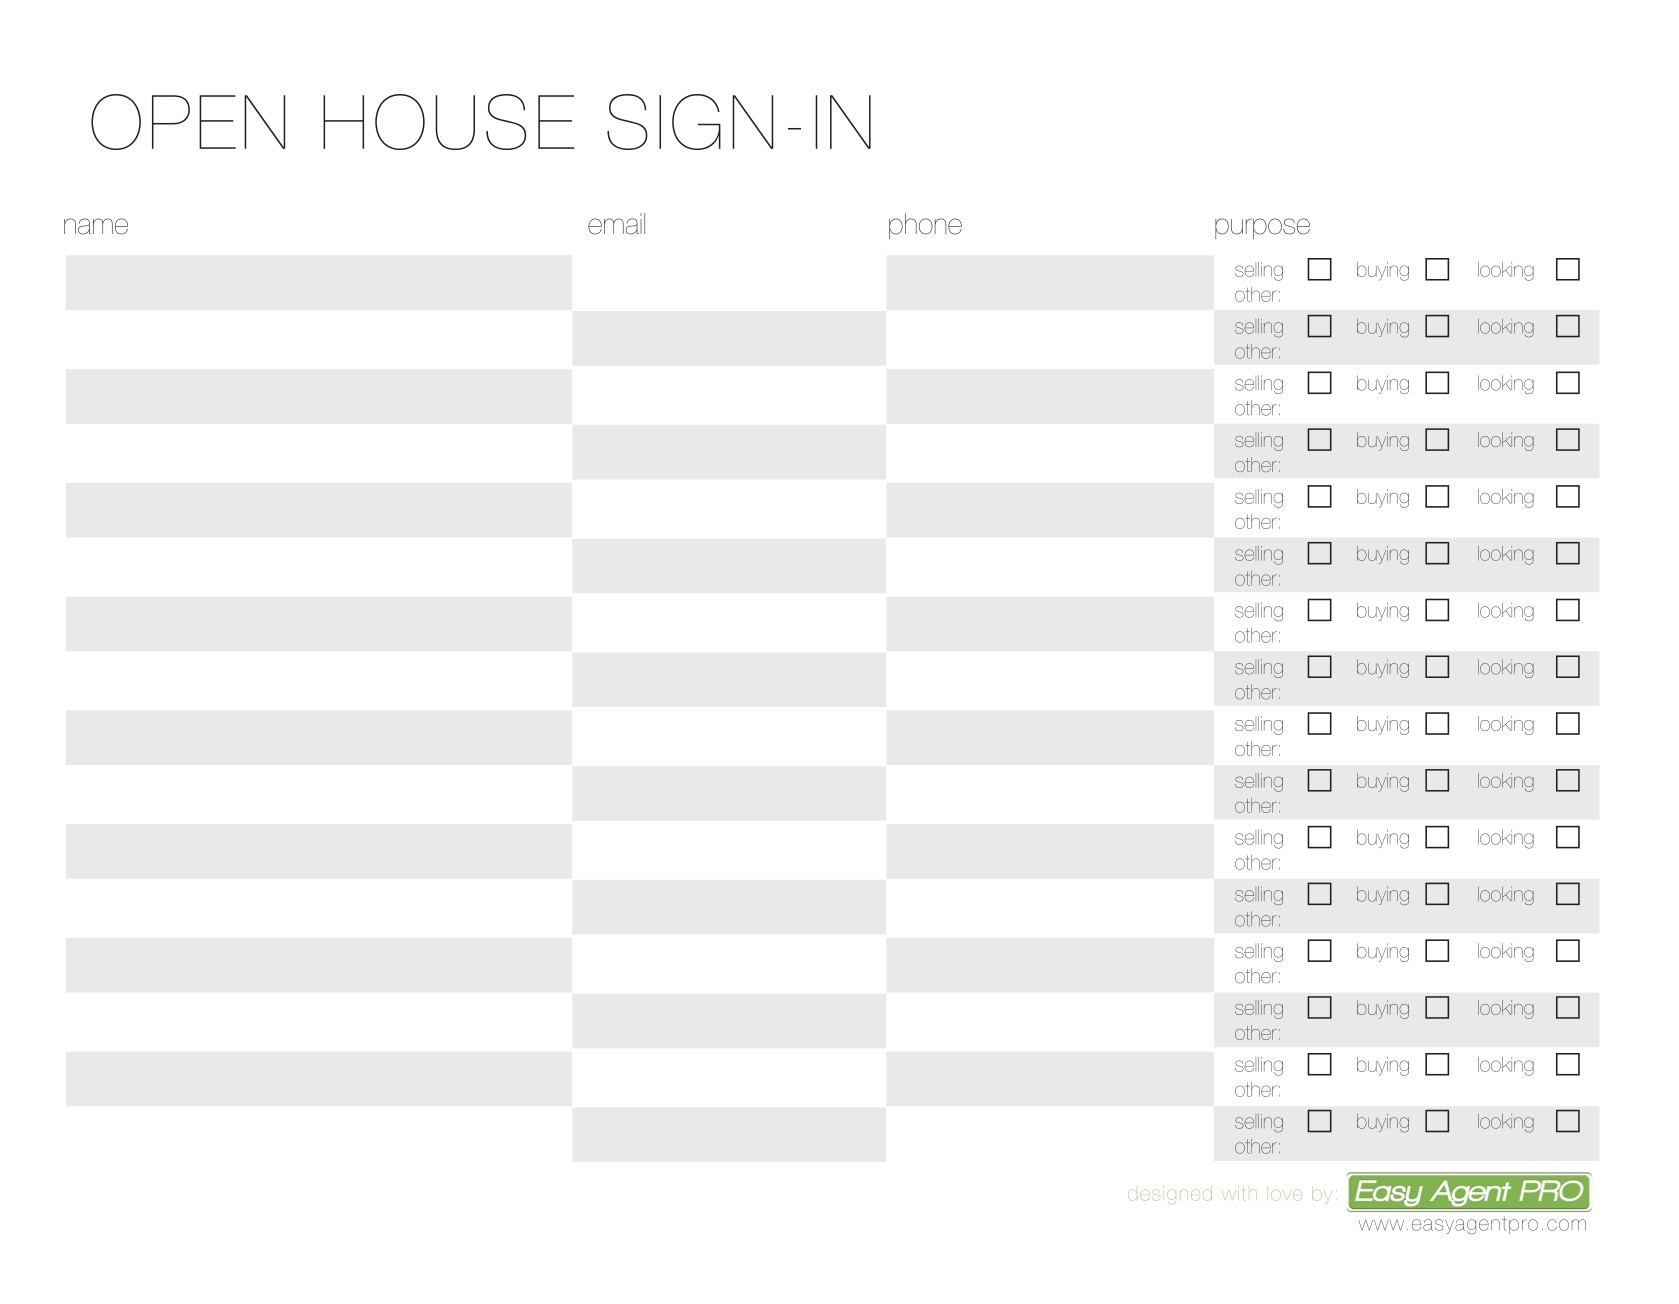 Open house sign in sheet printable templates free ready for use finally you can use a full survey for your open house sign in sheet maxwellsz